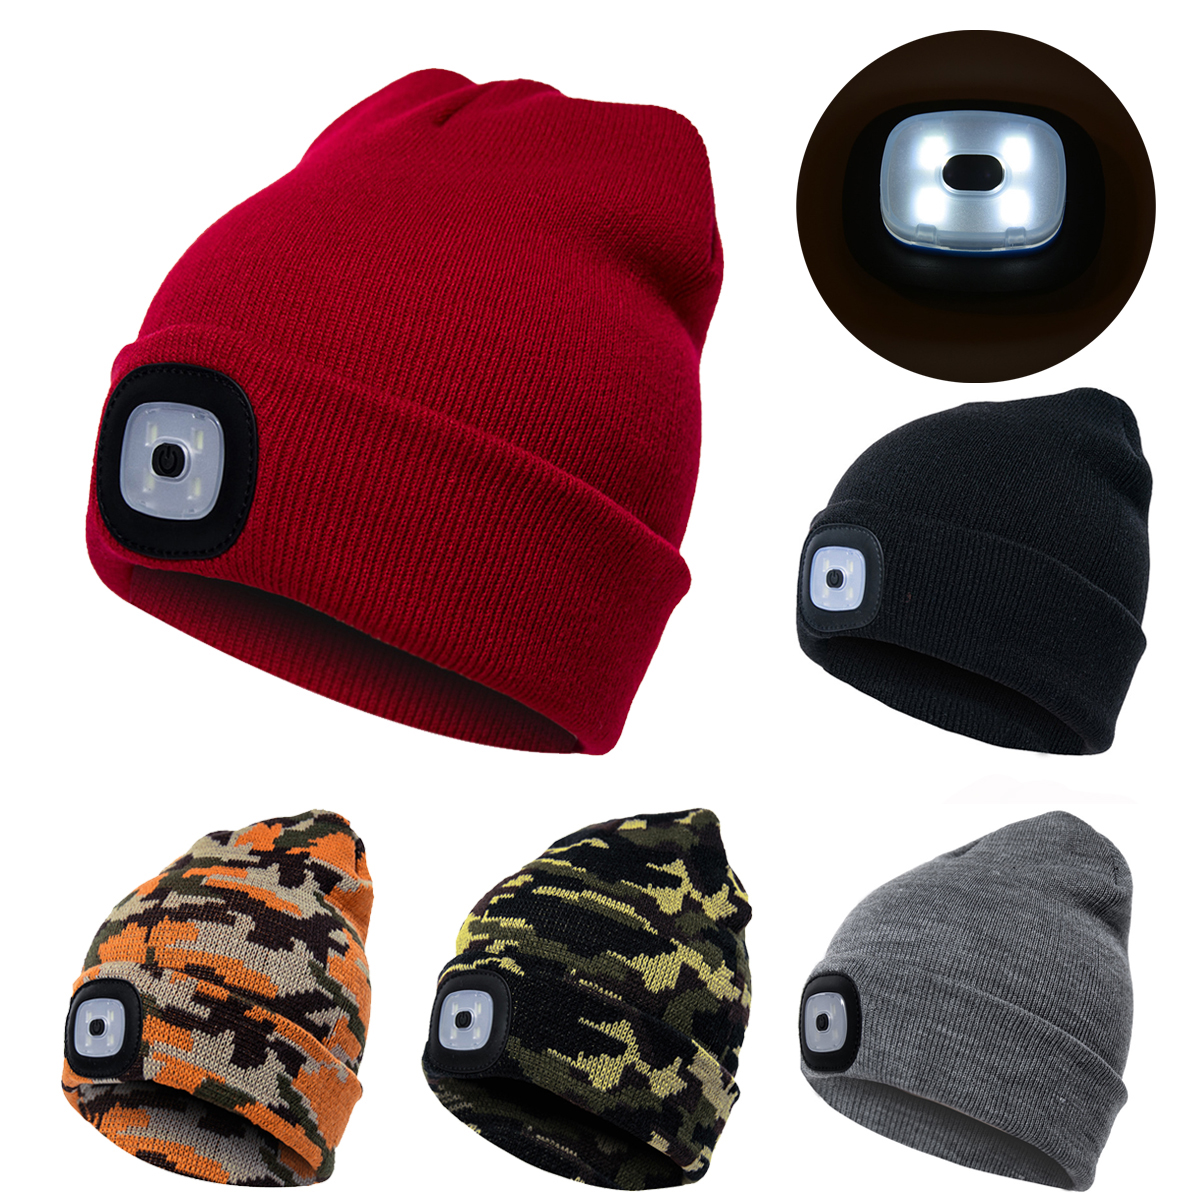 3 Modes Brightness Winter Warm Knitted Hat LED Light Sports Hat